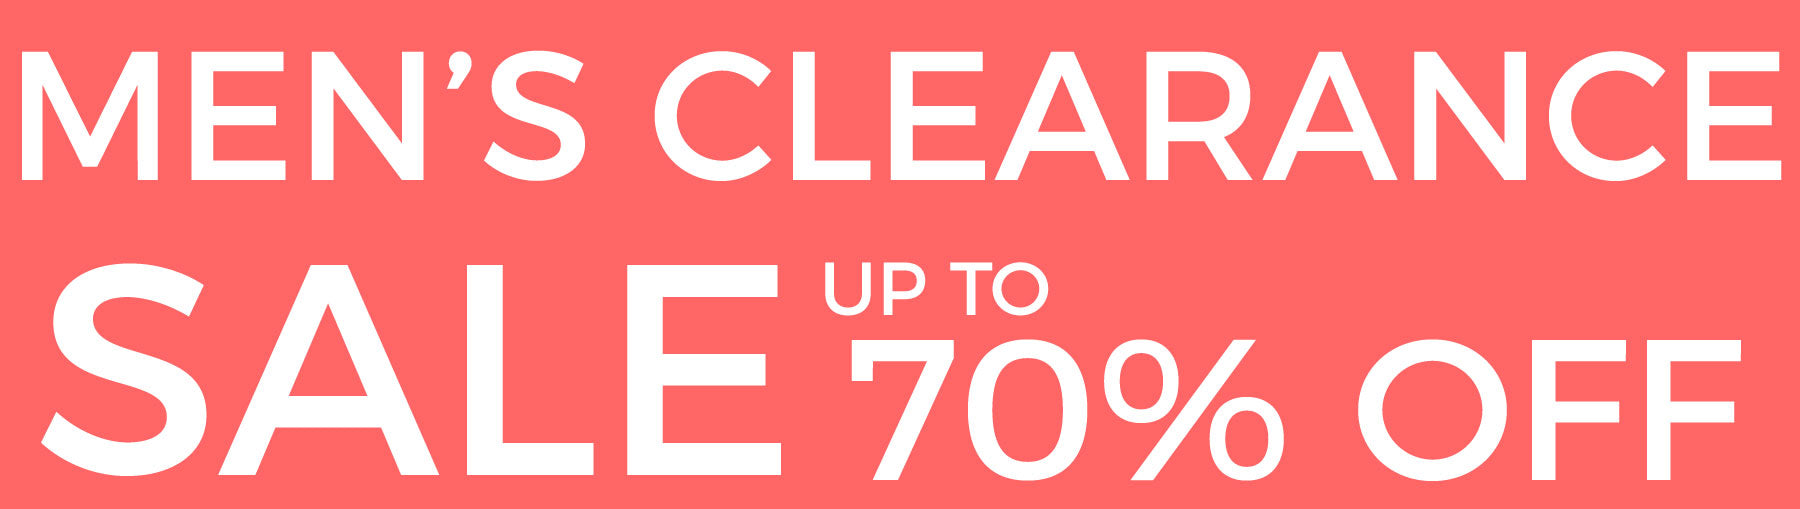 Men's Clearance Sale Up to 70% Off